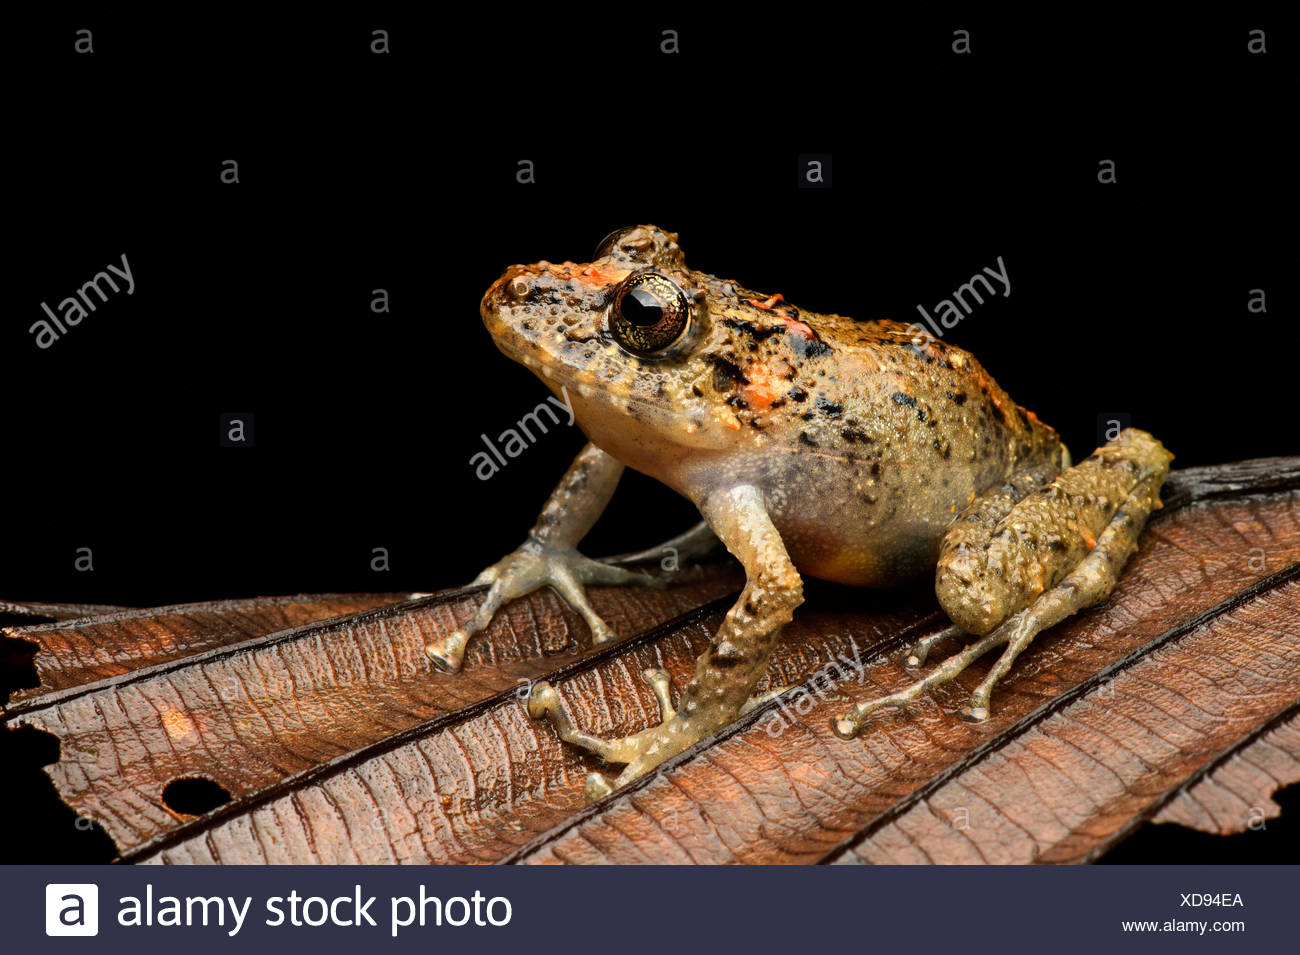 Executioner Clownfrog (Dendropsophus carnifex), tree frog family (Hylidae), fog rainforest, Mindo valley, Andes, Ecuador - Stock Image